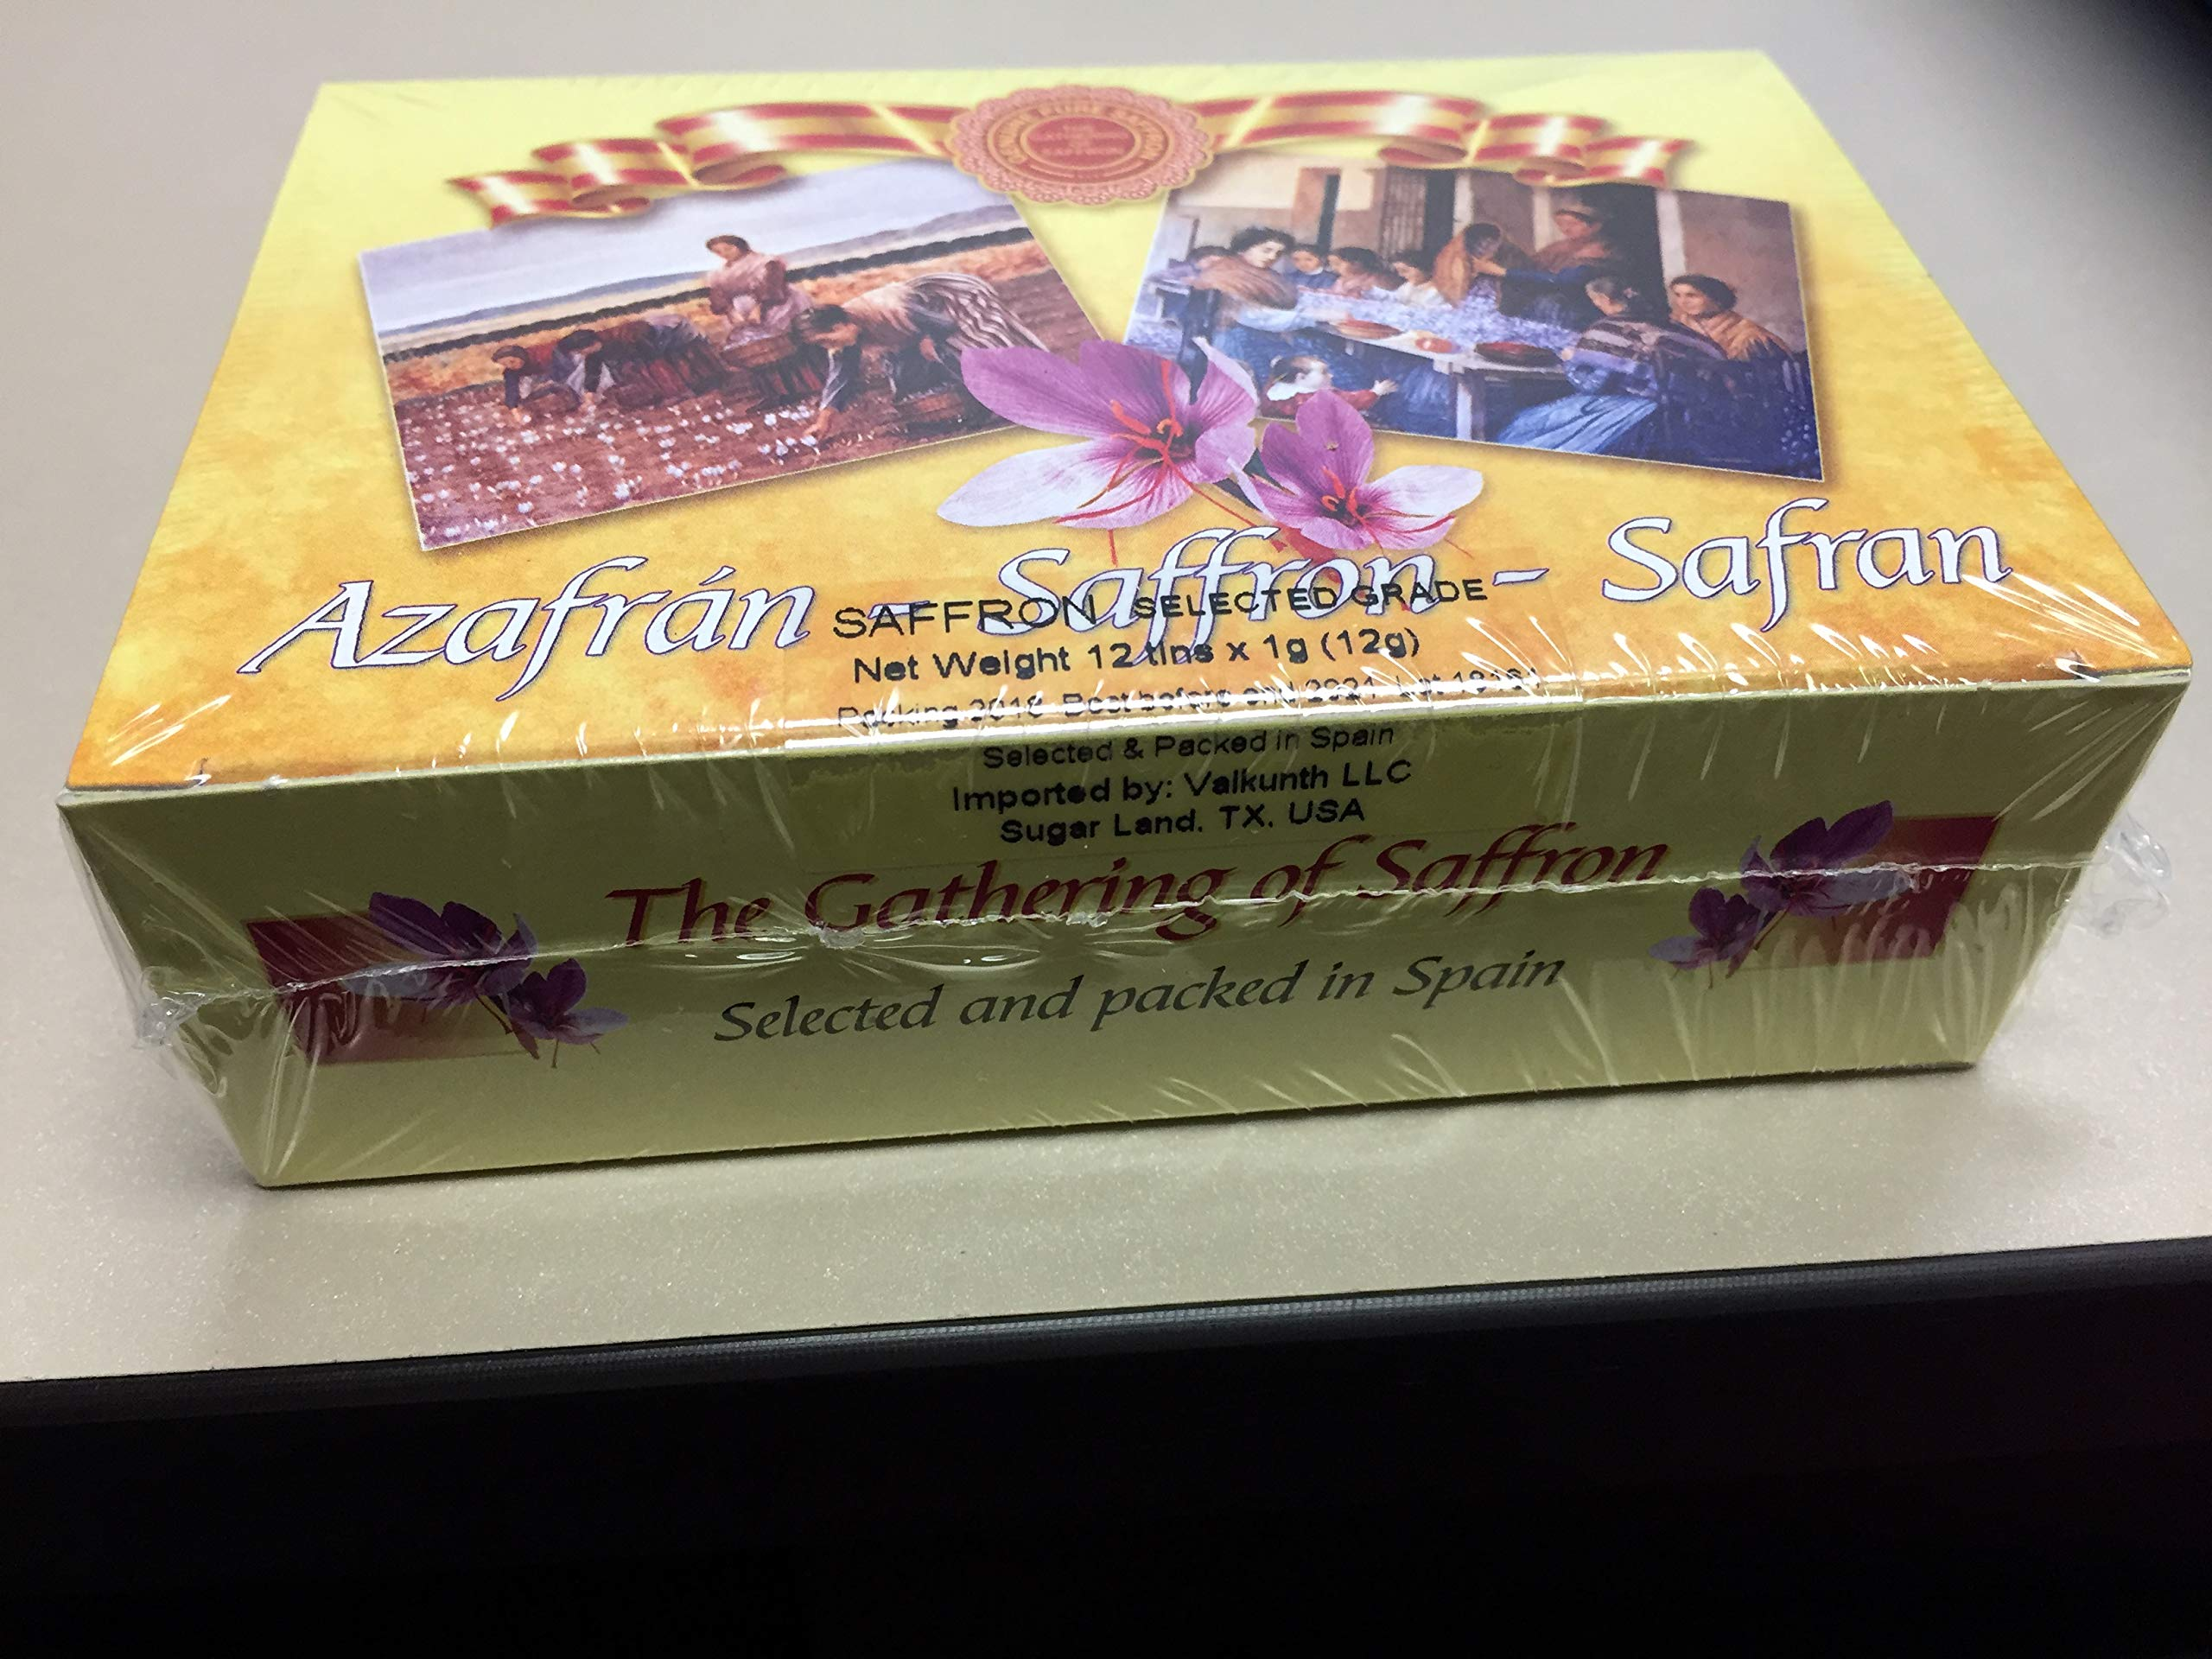 The Gathering of Saffron Brand Saffron 12 tin x 1 gm